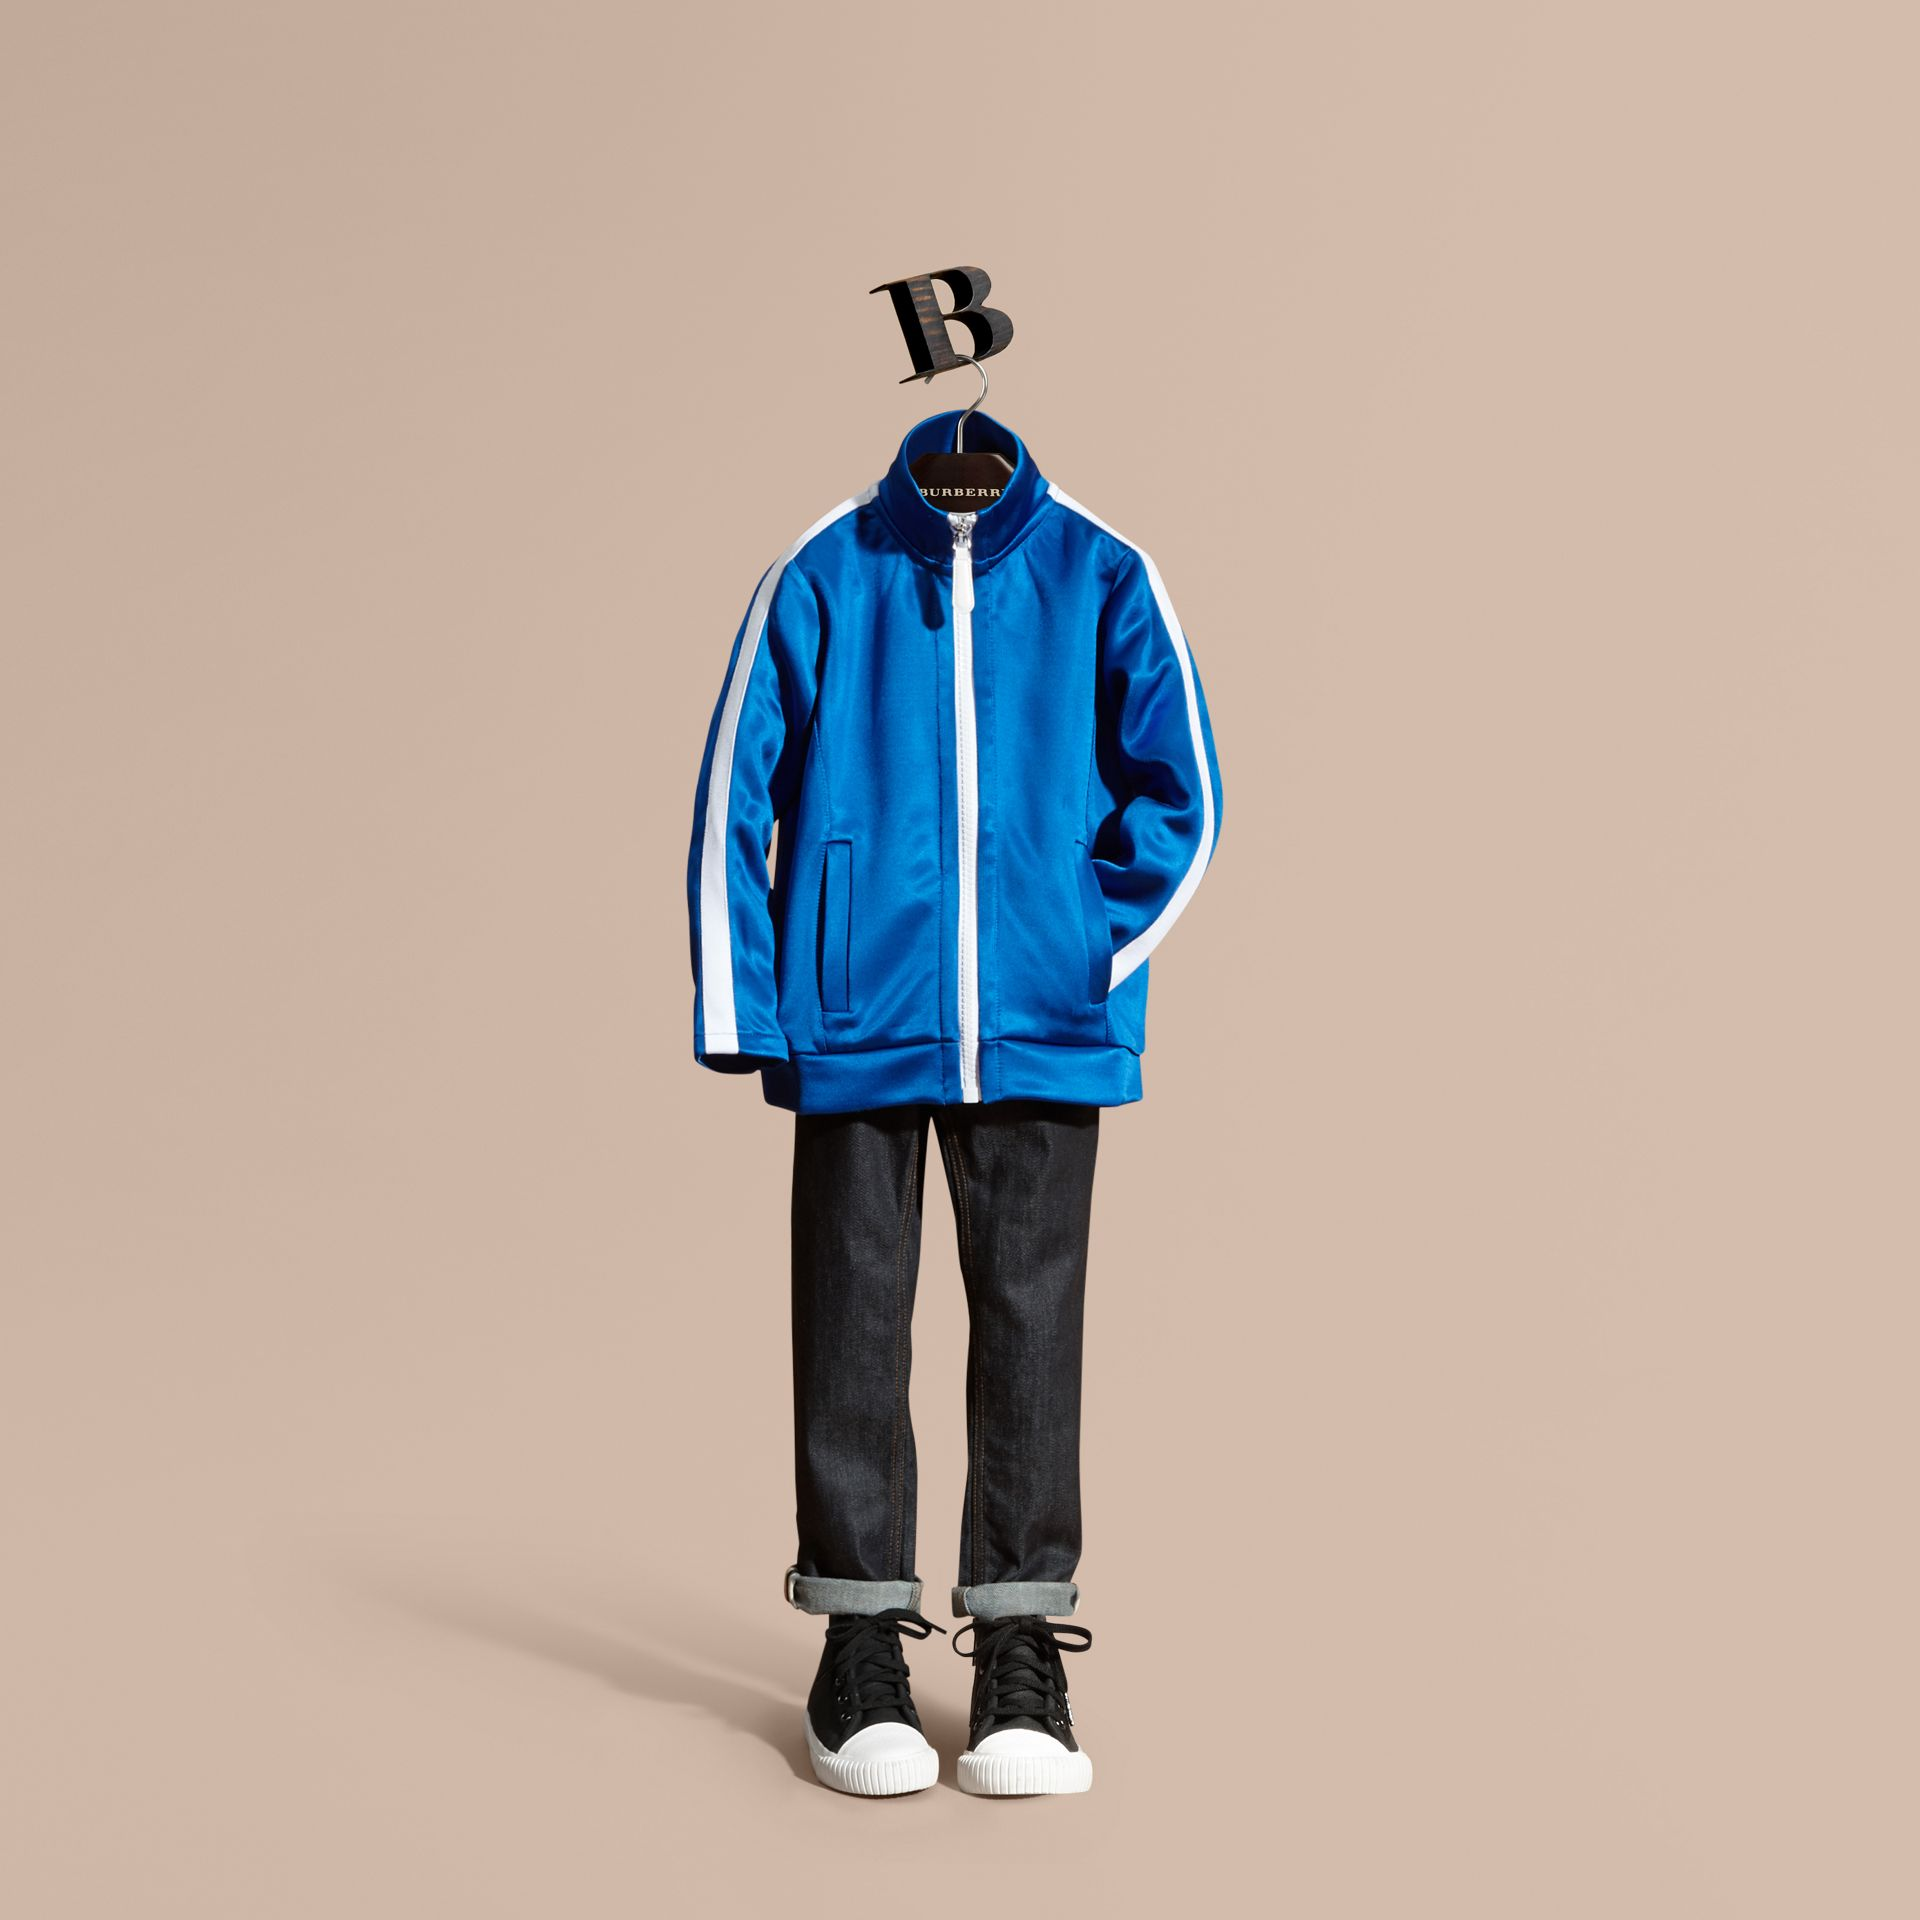 High-shine Technical Track Jacket in Atlantic Blue - gallery image 1